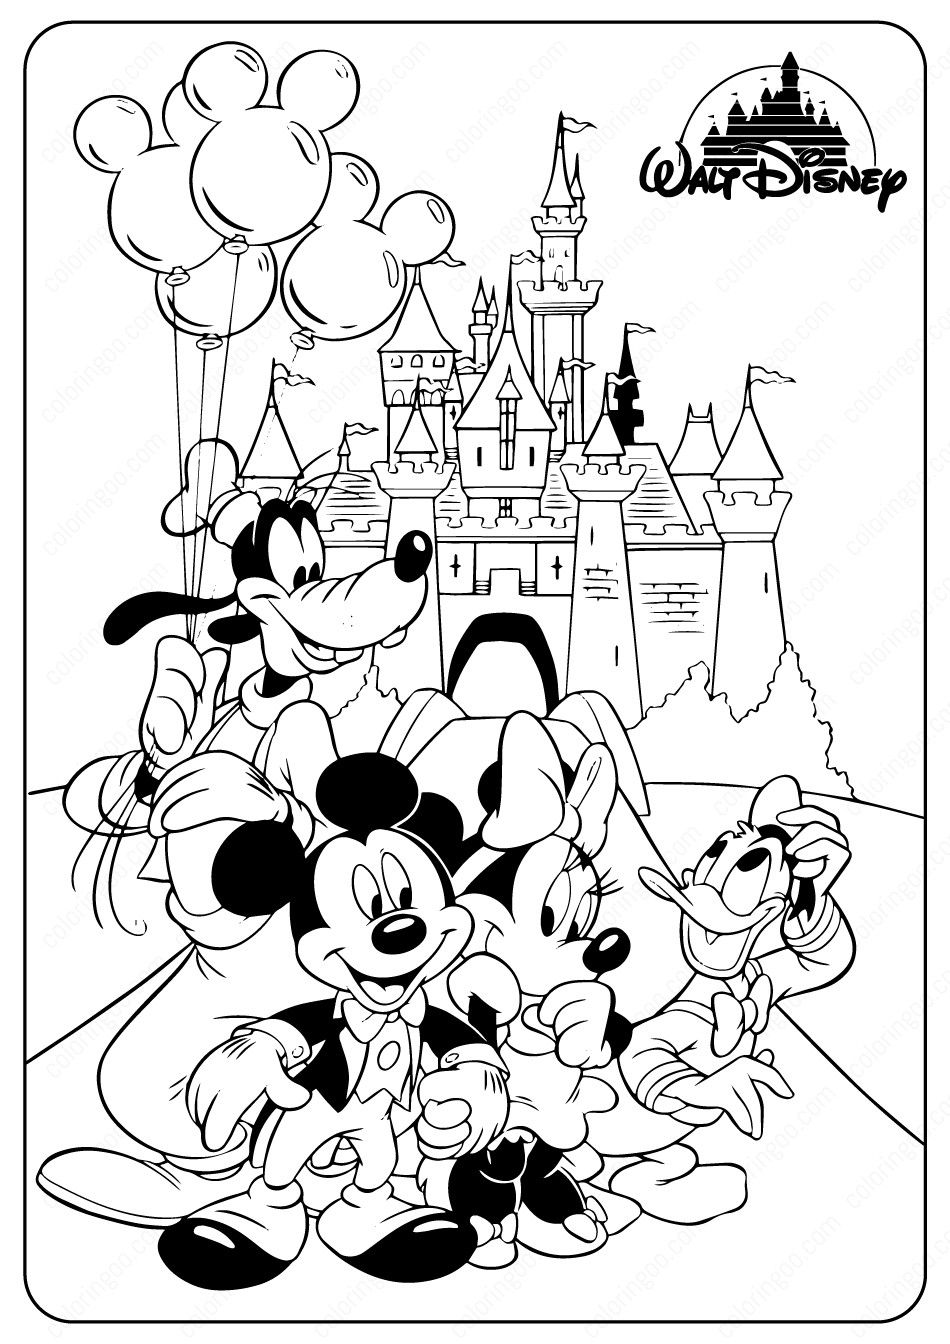 30 Mickey Mouse Coloring Pages Disney Coloring Pages Cartoon Coloring Pages Mickey Mouse Coloring Pages